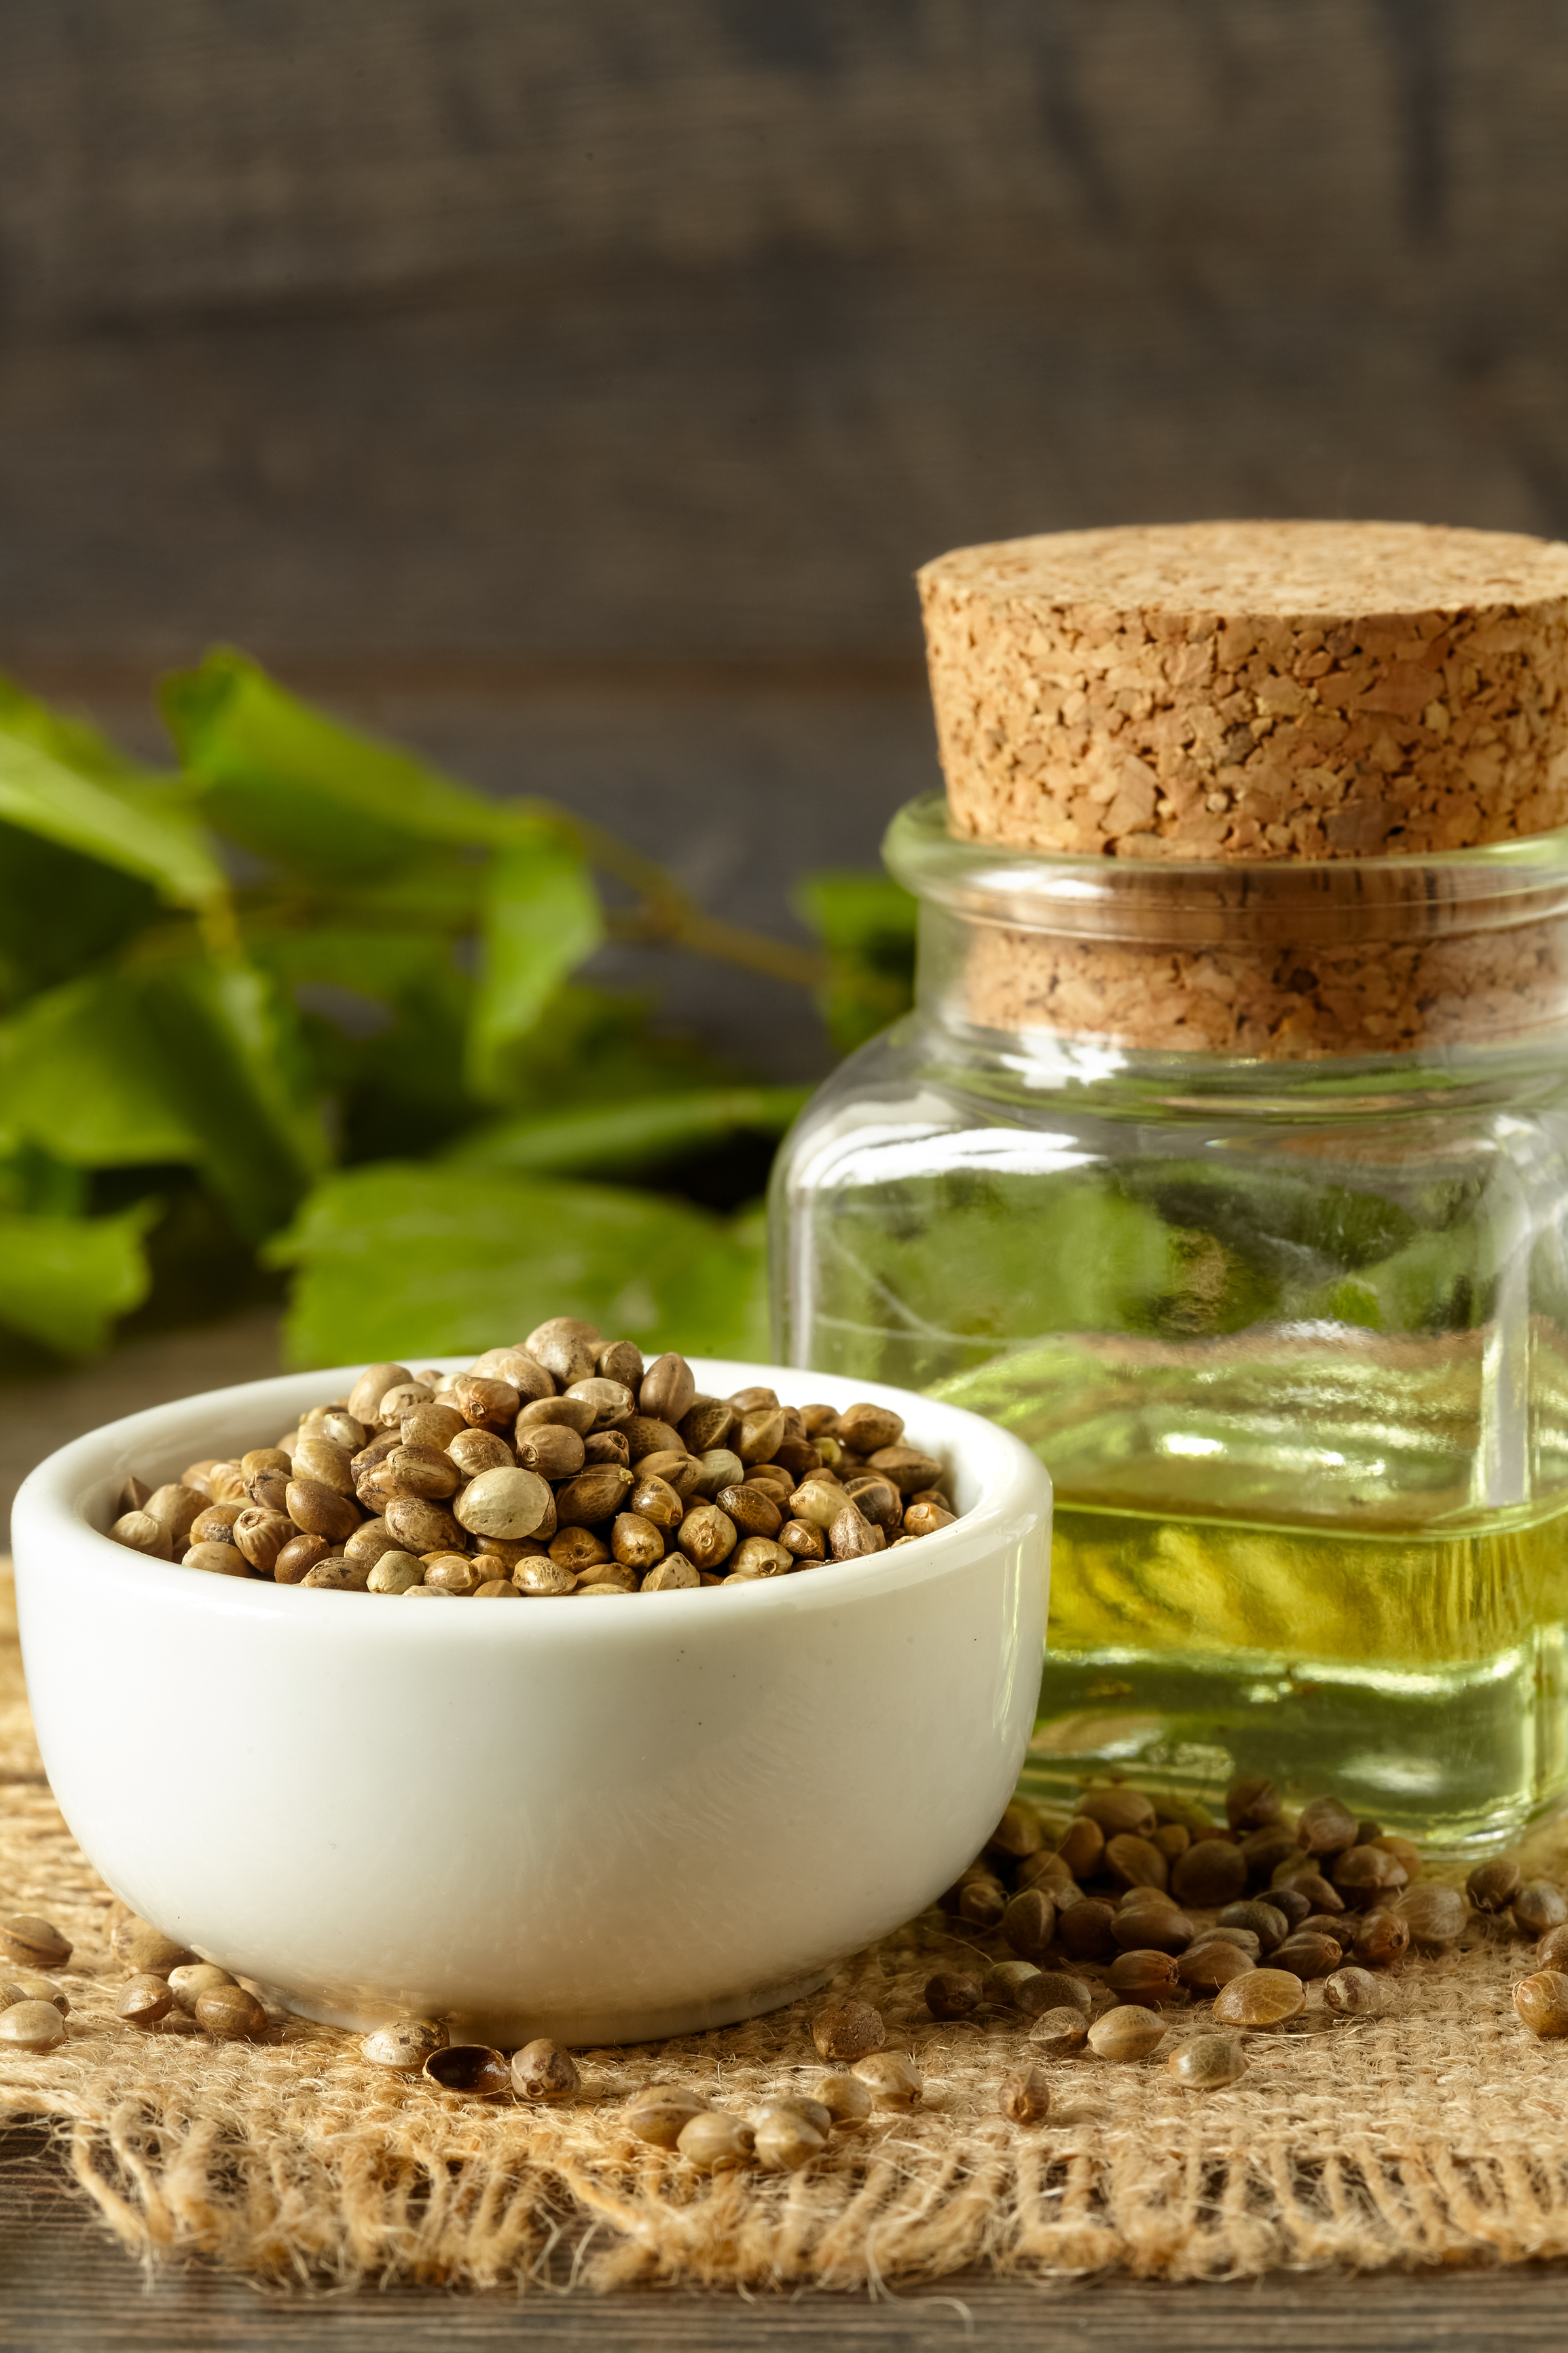 Hemp seed oil versus CBD oil- what's the difference?